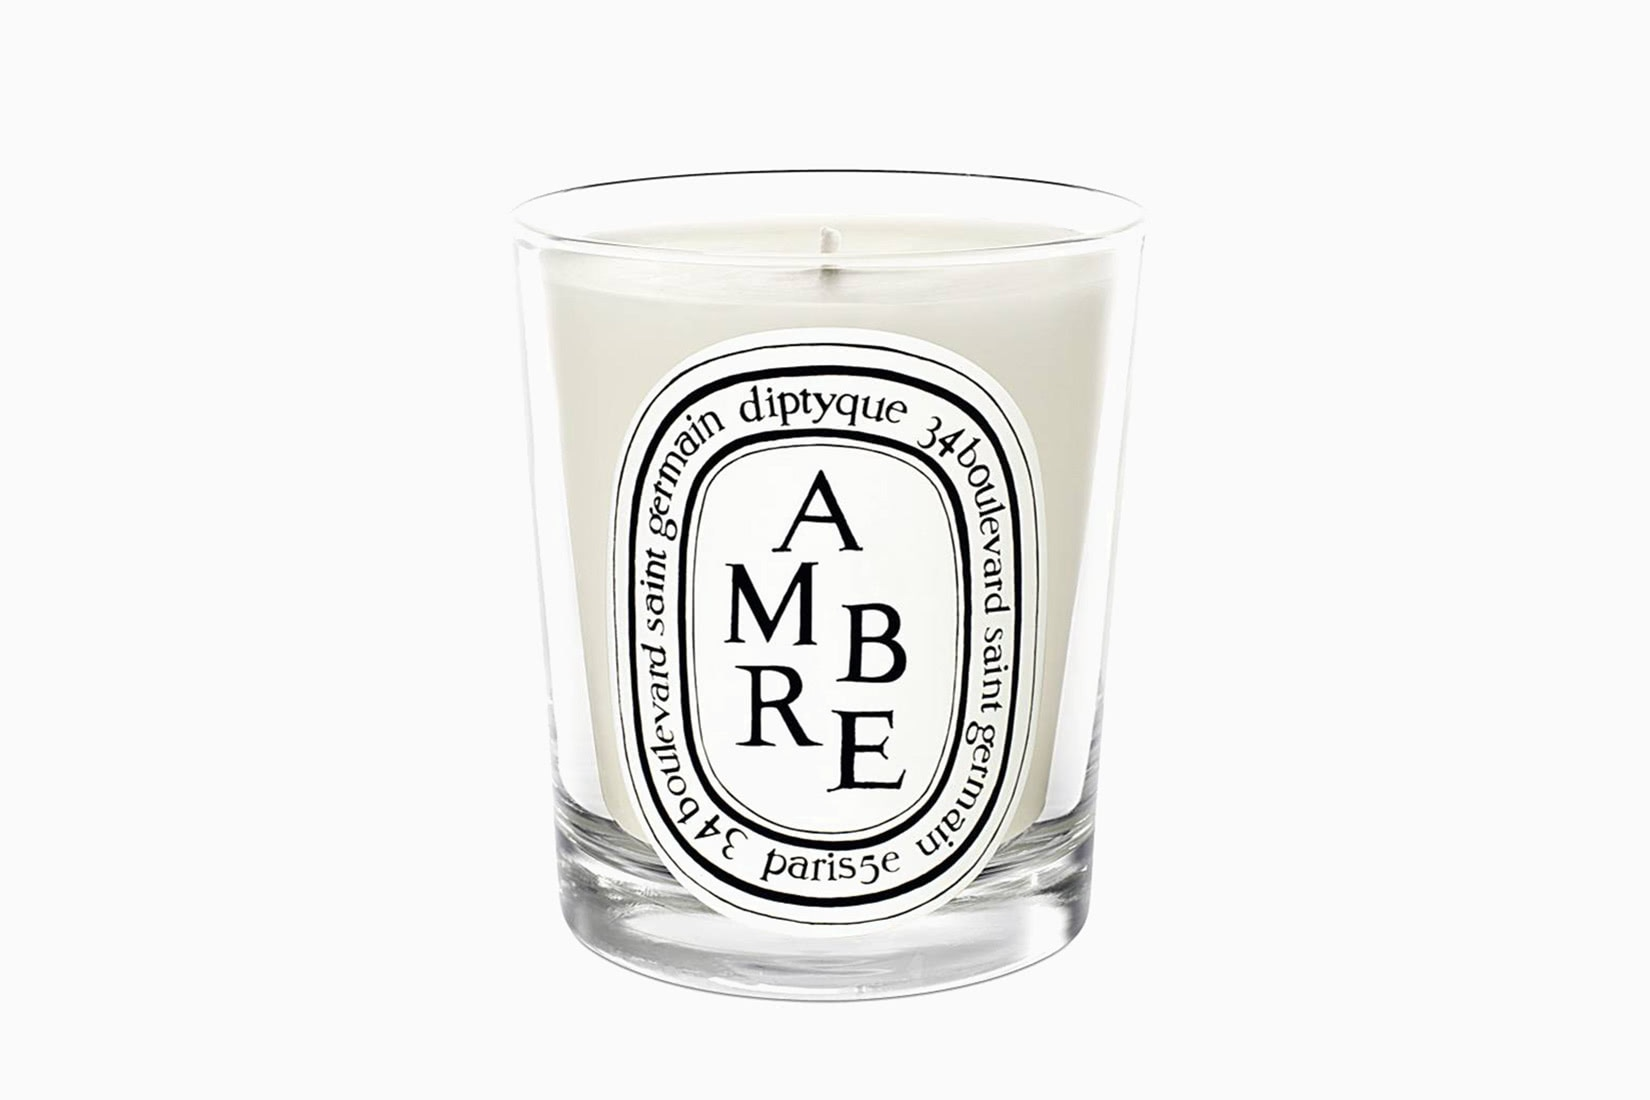 best scented candles diptyque ambre home fragrance - Luxe Digital